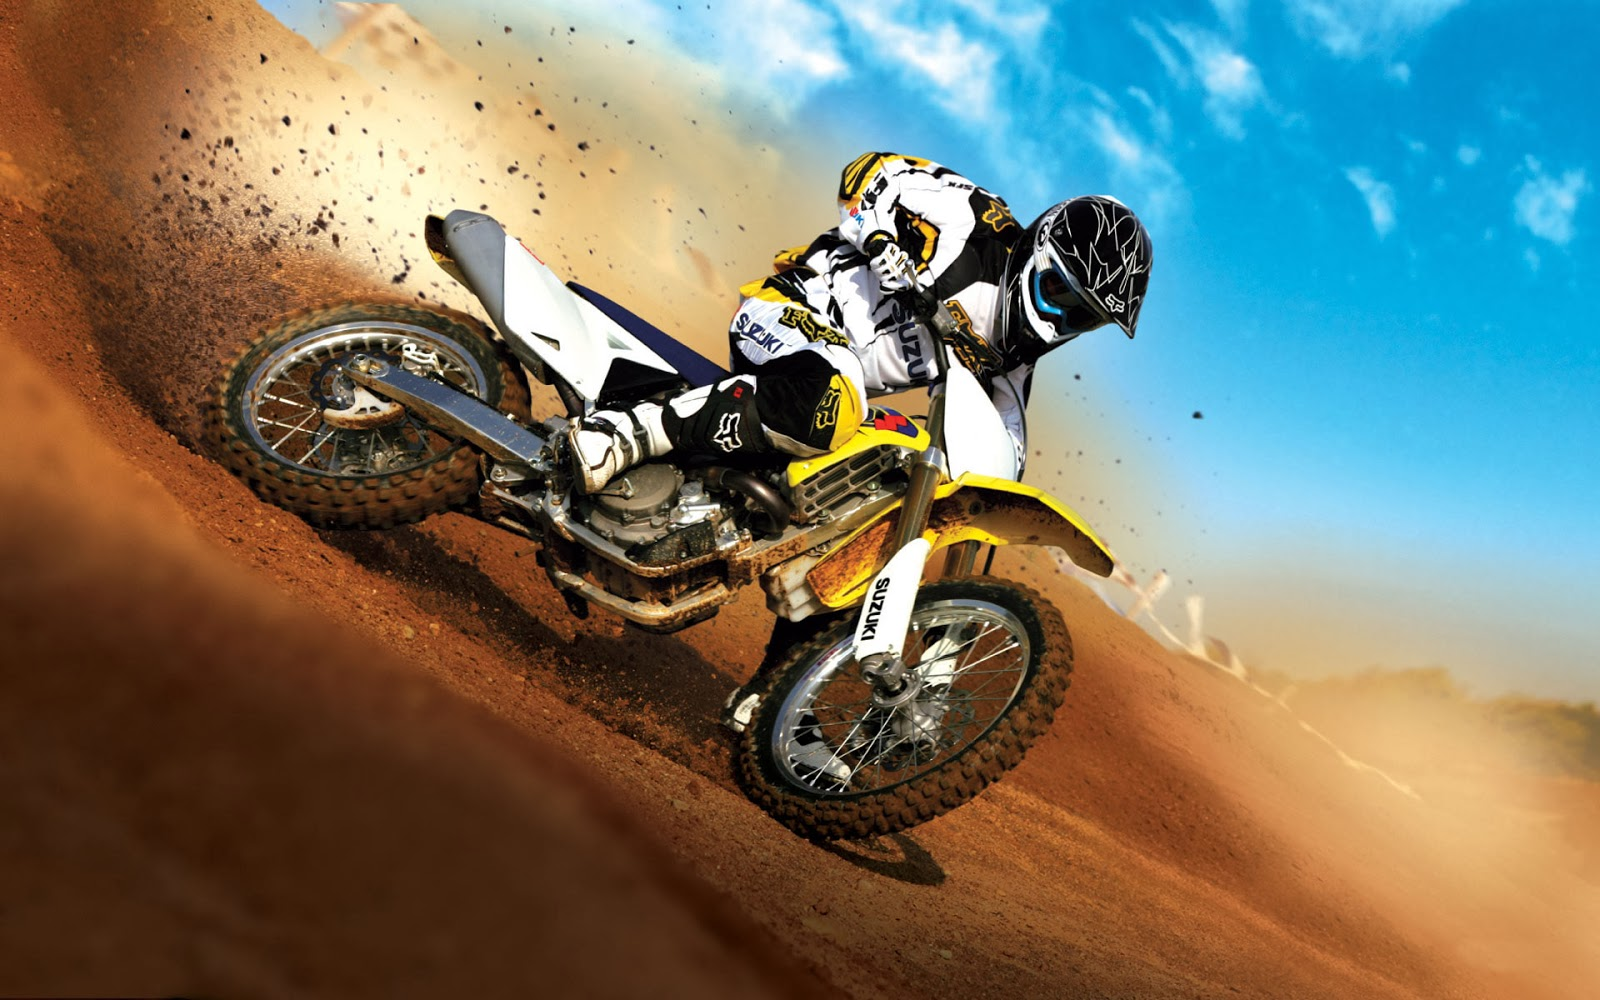 HD Bike wallpapers 1080p - Mobile wallpapers